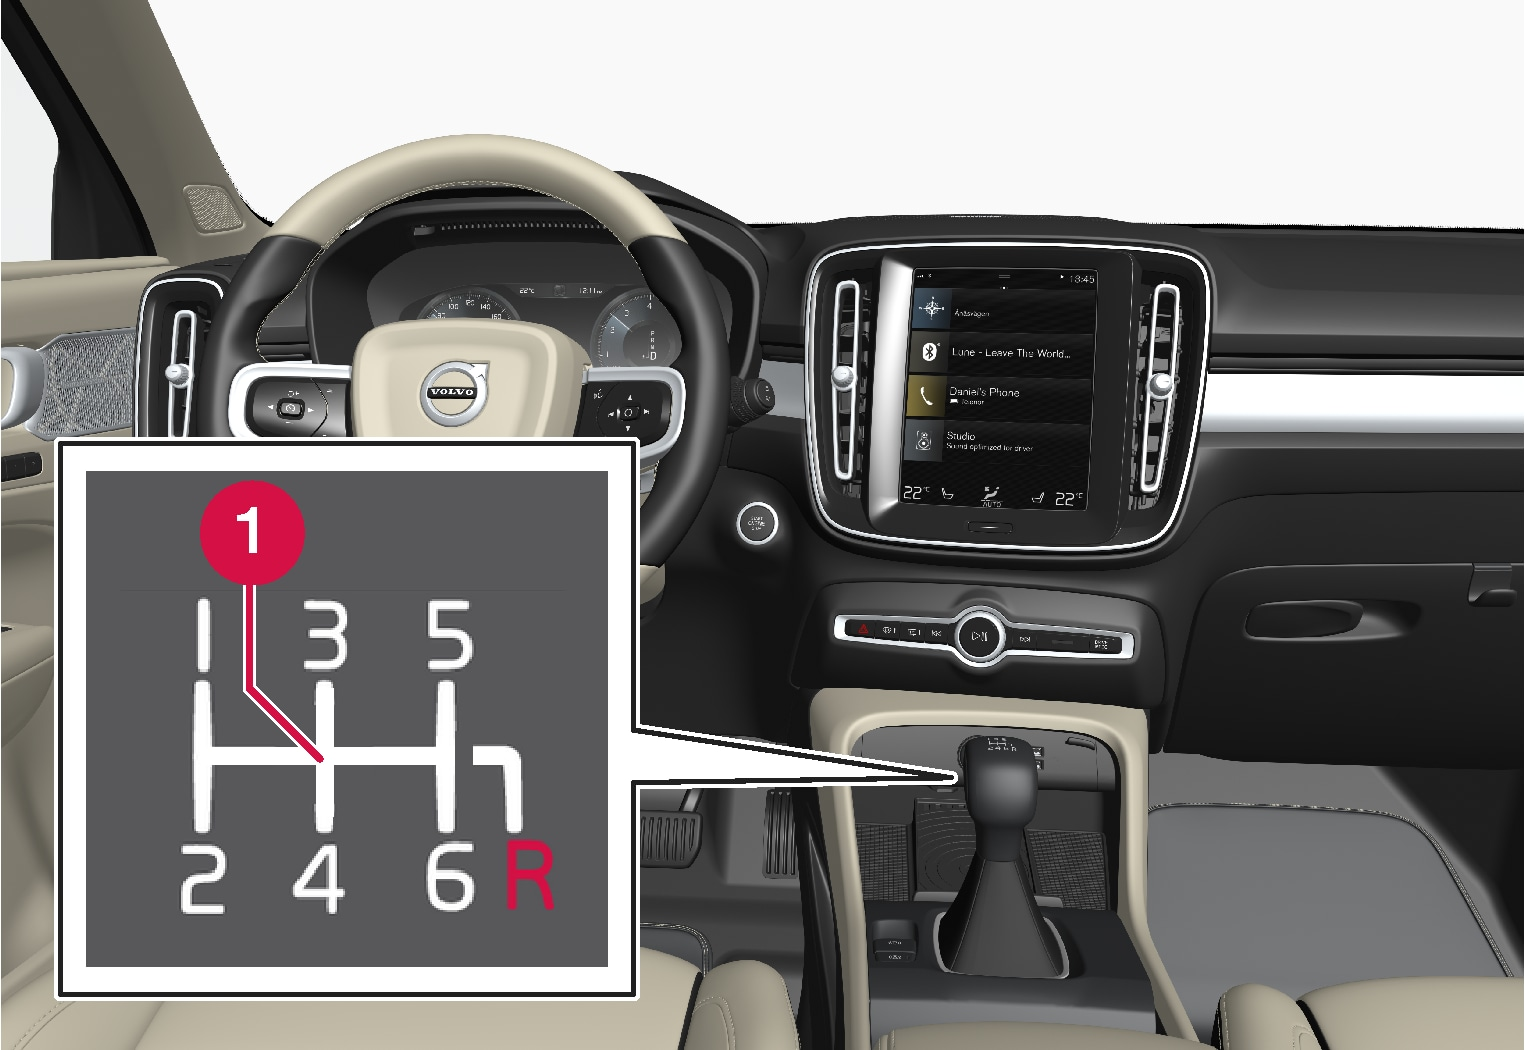 P6-1917-XC40-Overview manual gear shifter and gear shift pattern